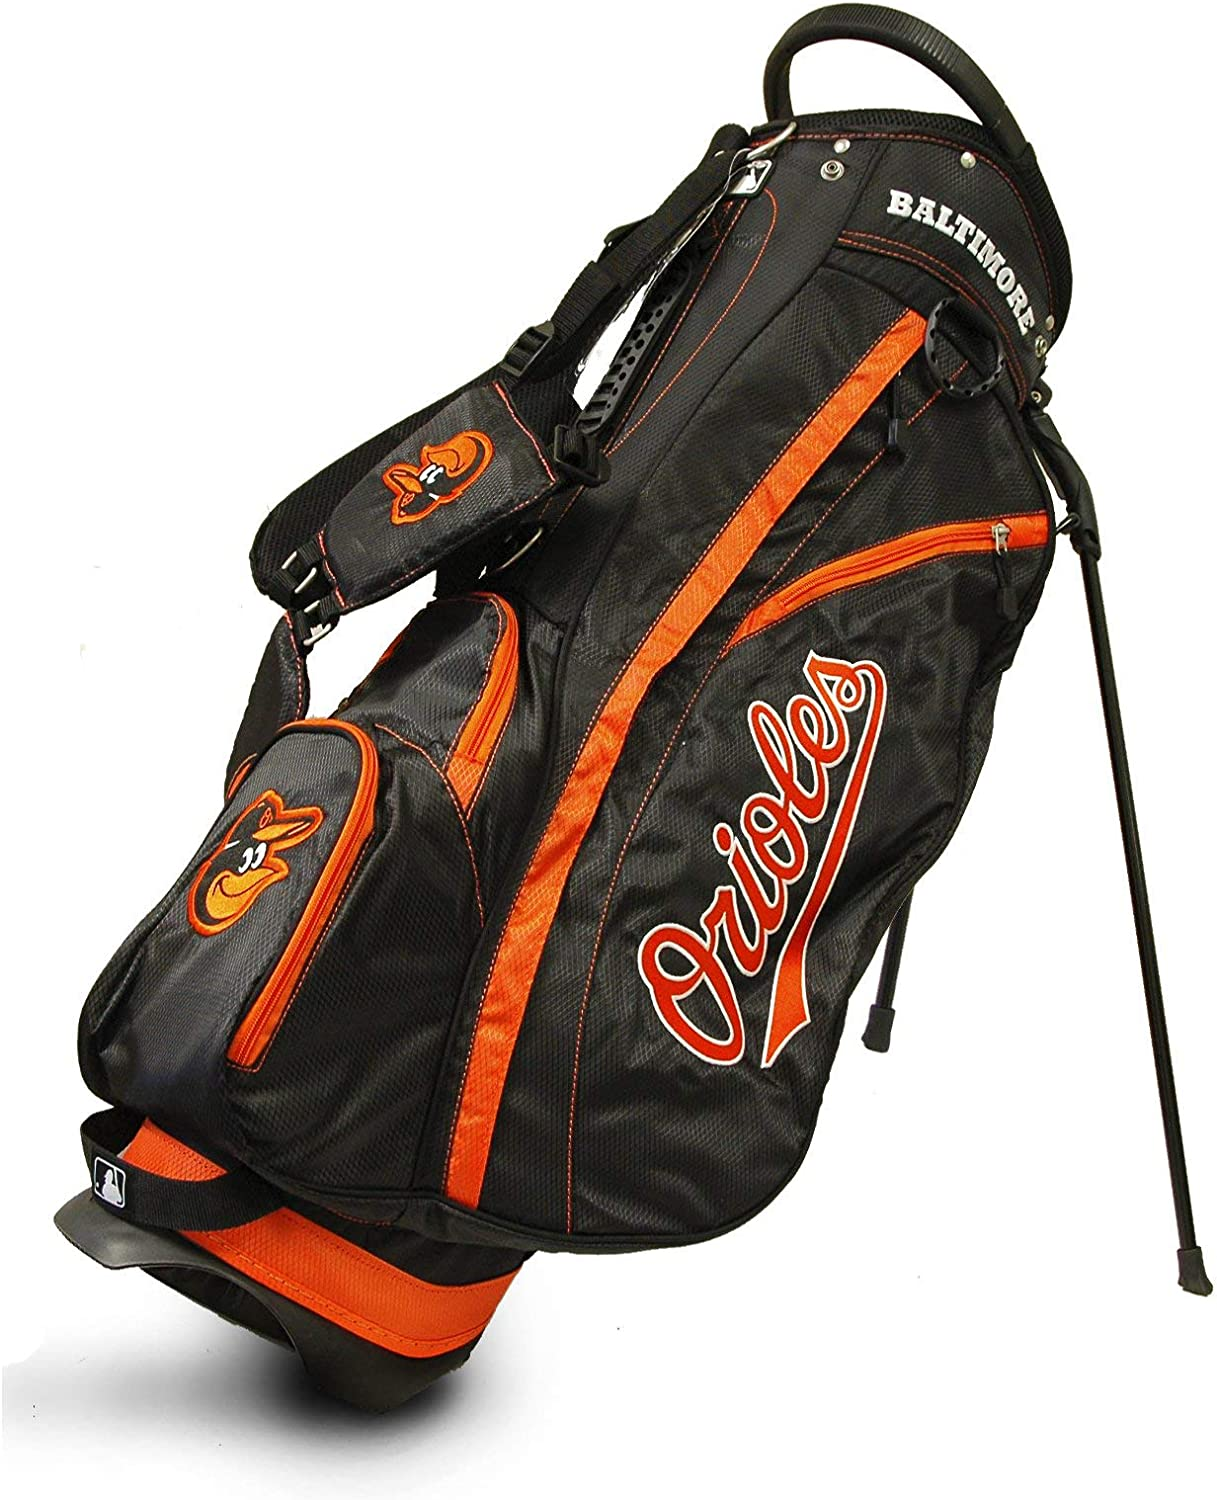 Team Golf MLB Baltimore Orioles Fairway Golf Stand Bag, Lightweight, 14-way Top, Spring Action Stand, Insulated Cooler Pocket, Padded Strap, Umbrella Holder & Removable Rain Hood : Sports Fan Golf Club Bags : Sports & Outdoors